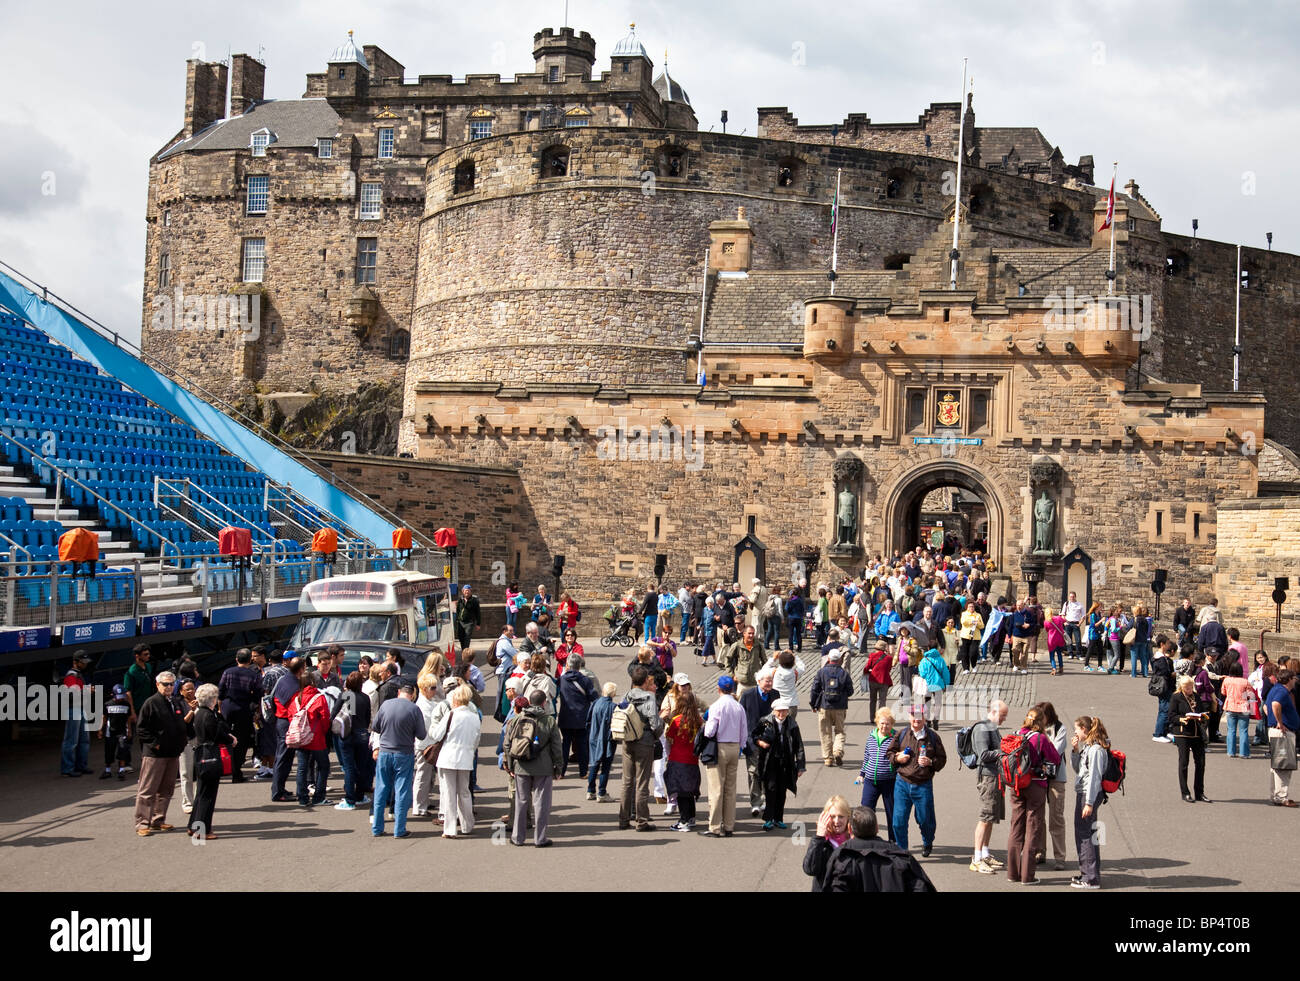 Crowds of tourists in Edinburgh Castle Esplanade, Scotland UK, Great Britain, with seating for the Military Tattoo Stock Photo